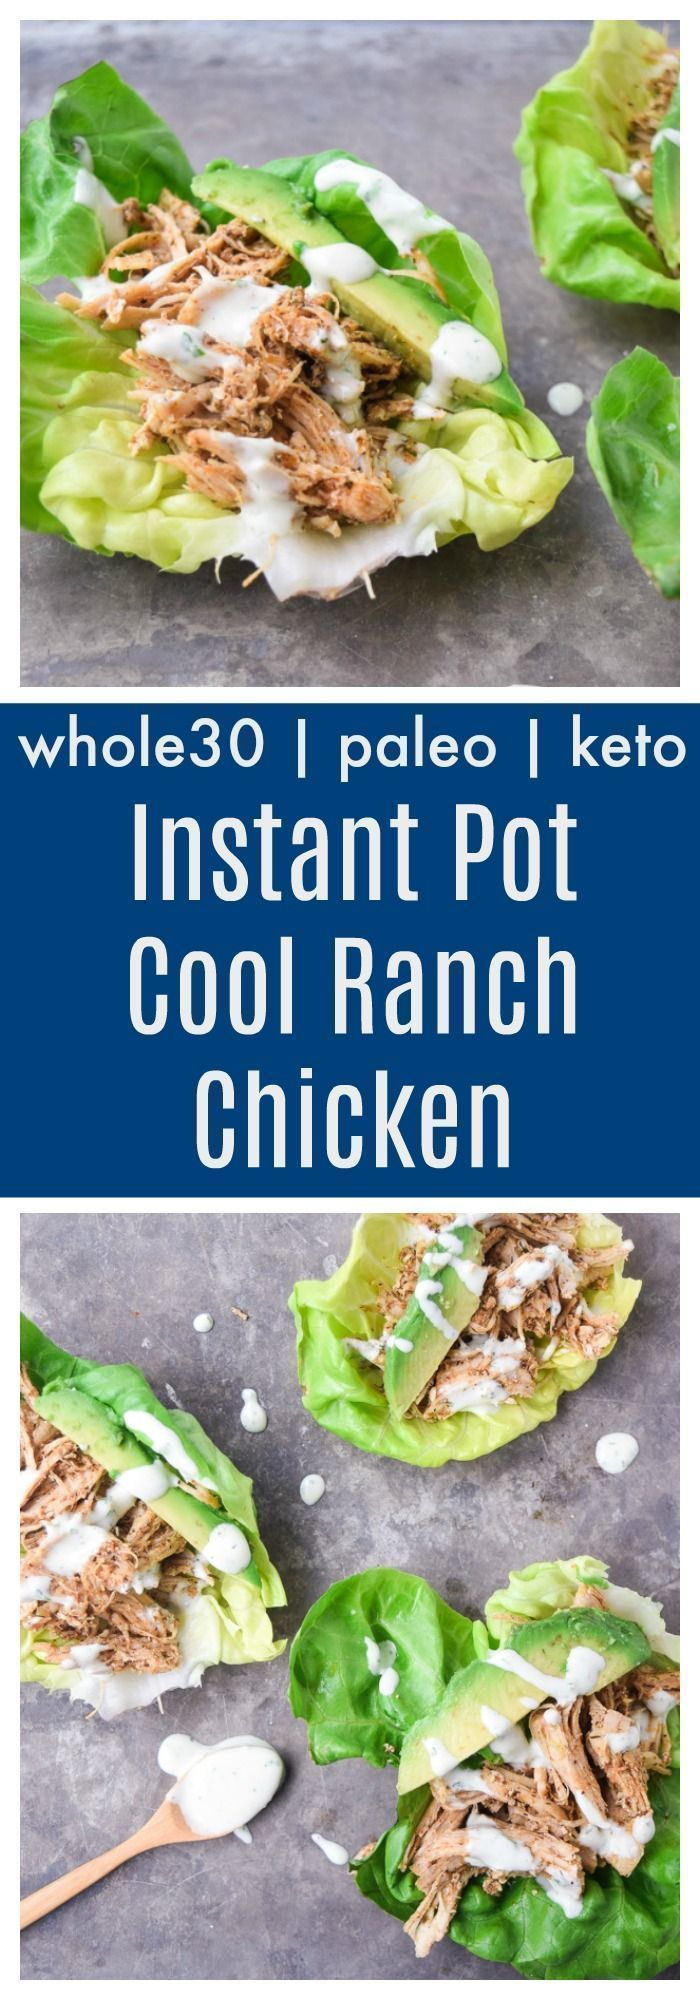 #tastythincom #seasonings #compliant #homemade #instant #chicken #instant #chicken #recipe #great #c...